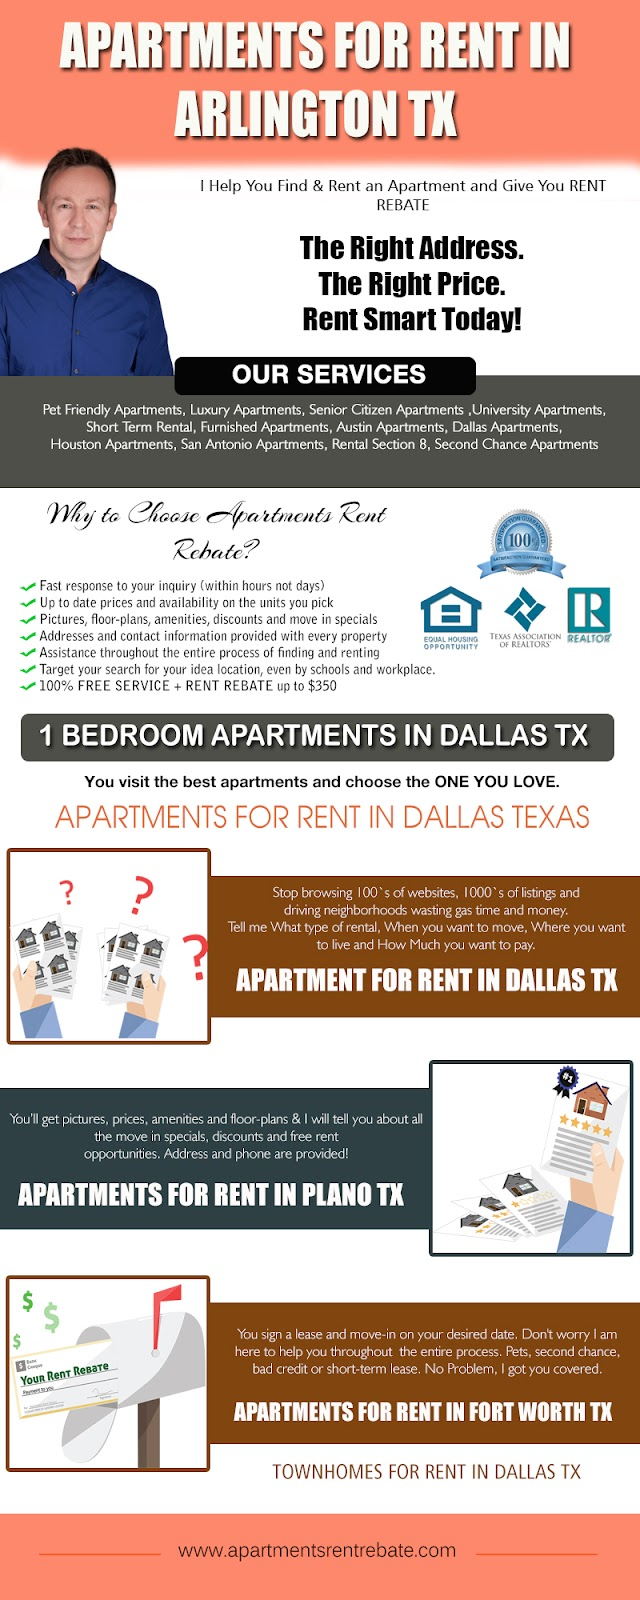 Apartments For Rent In Arlington TX.jpg